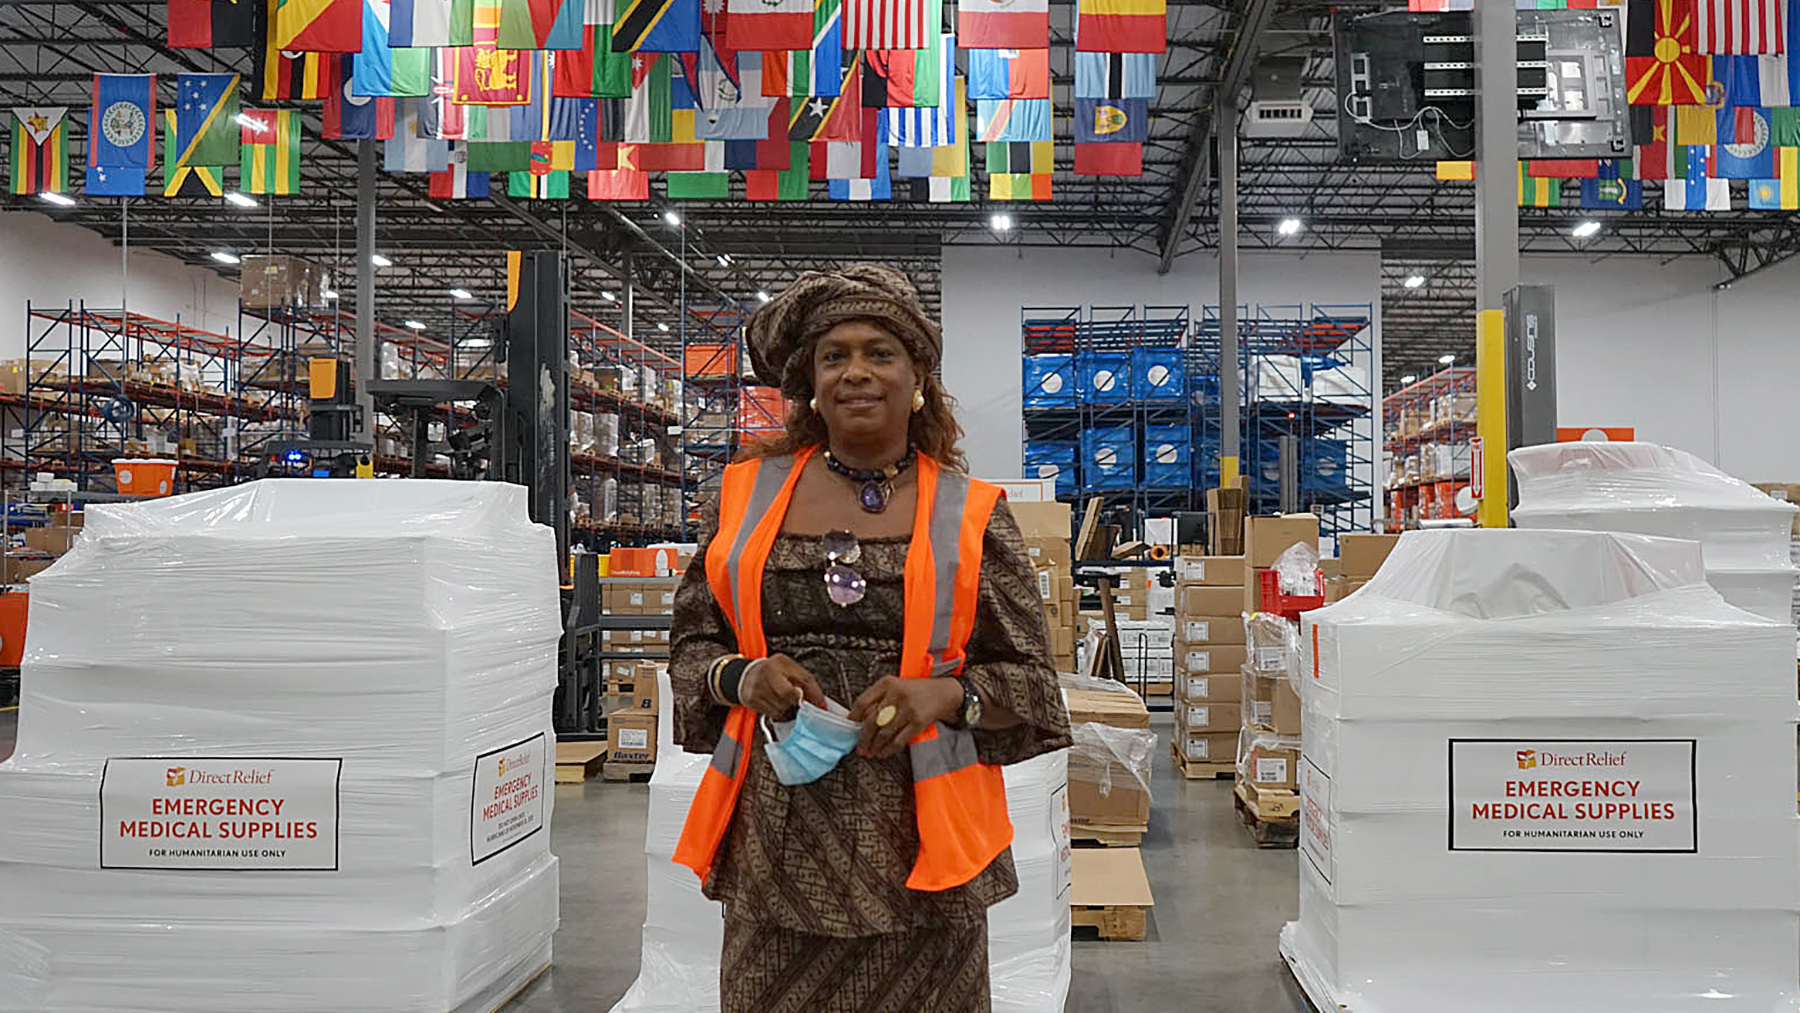 Sierra Leone's Honorary Consul Isatu Timbo visits Direct Relief's headquarters on August 14, 2020, as 16 pallets of personal protective gear and emergency medical supplies were prepared for shipment to Sierra Leone in response to Covid-19. (Amarica Rafanelli/Direct Relief)